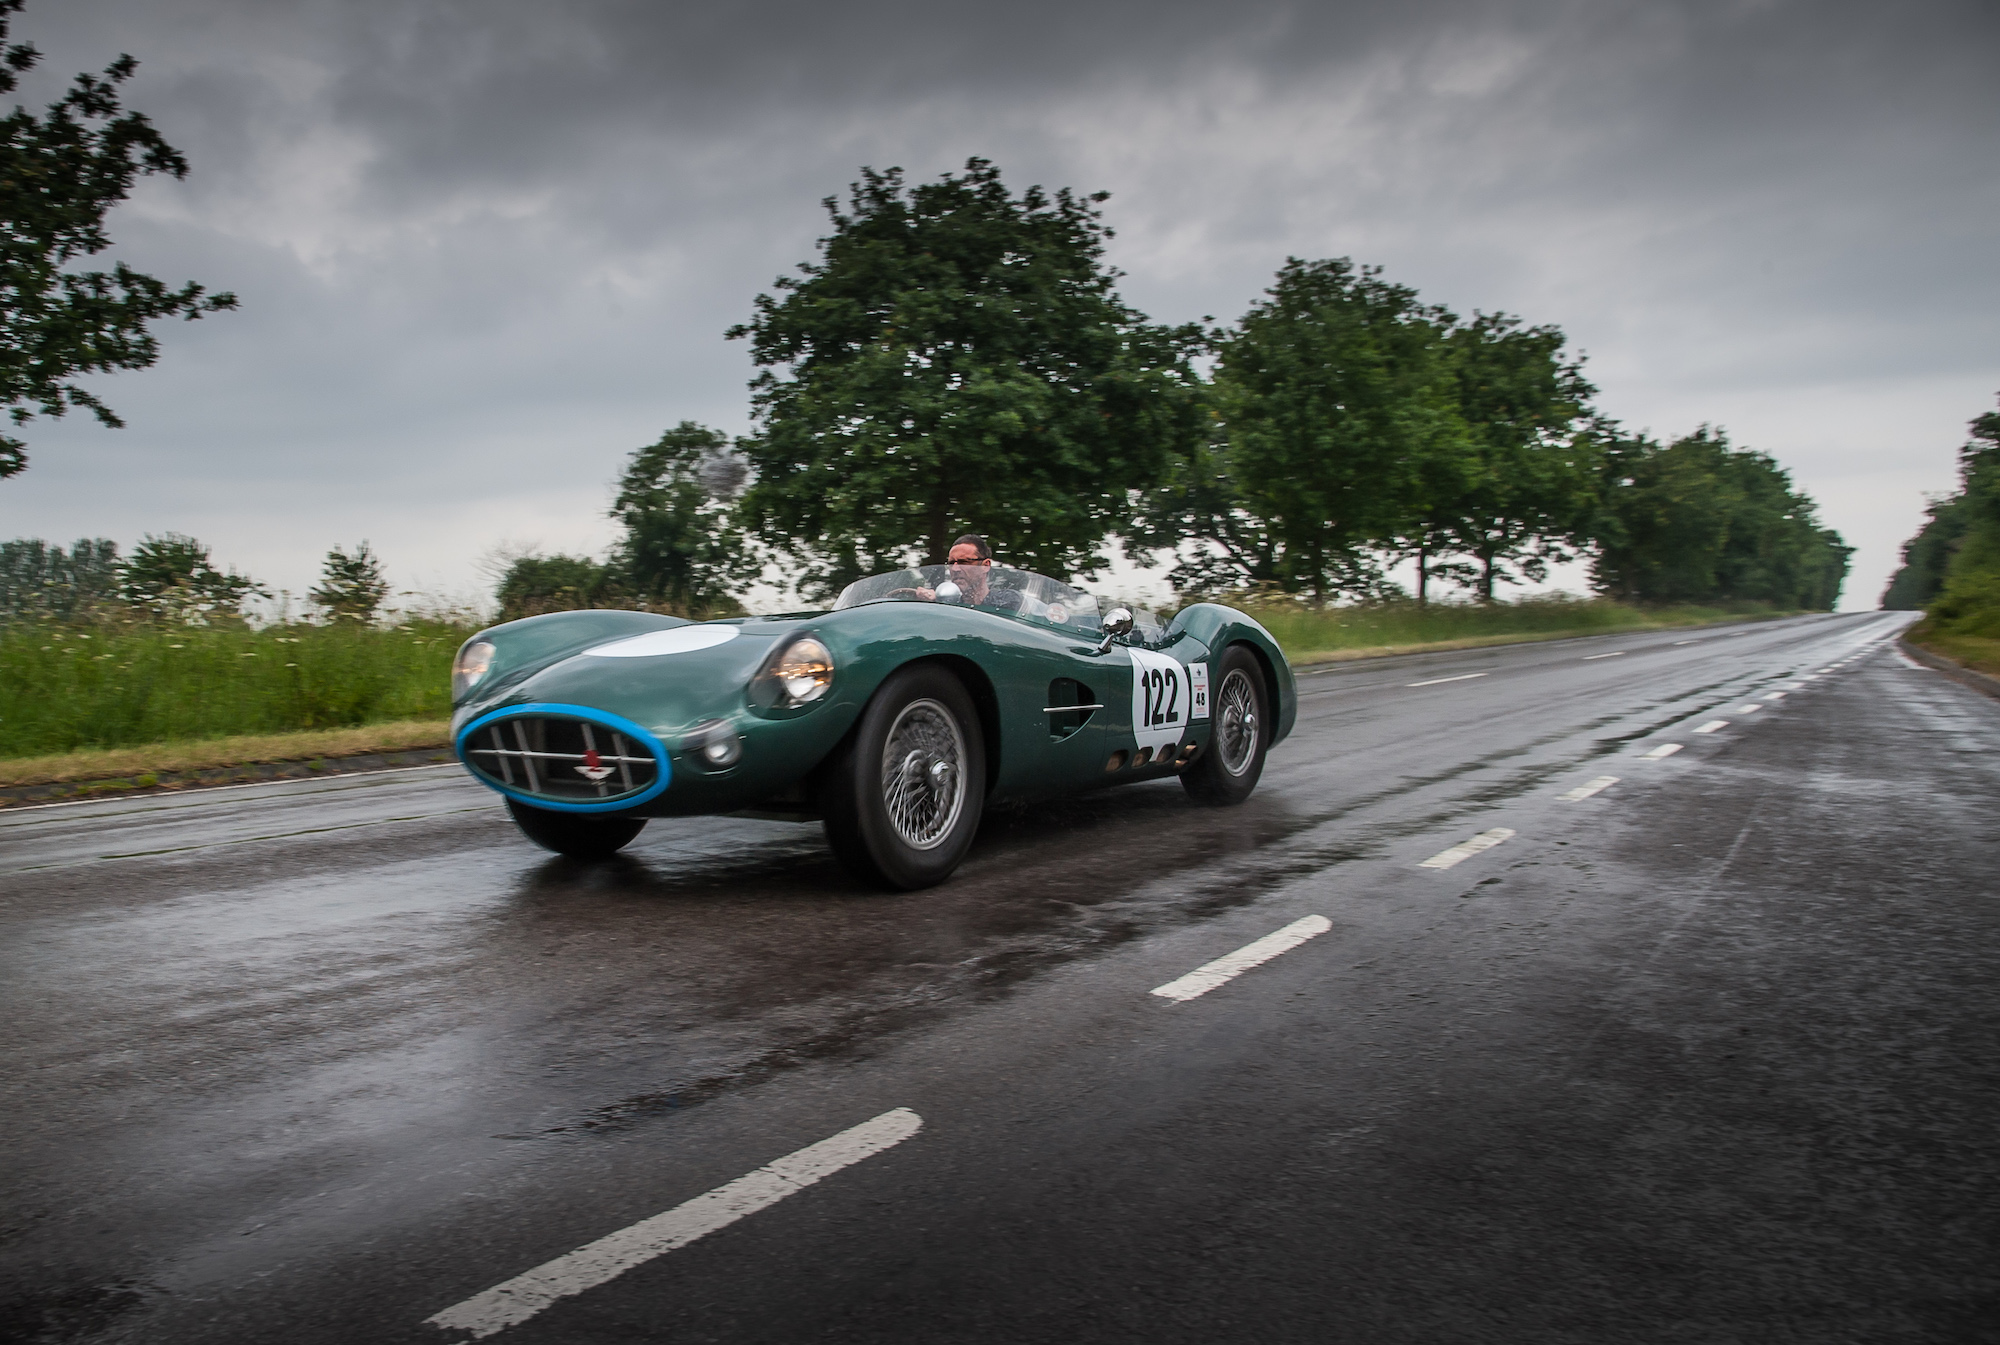 ASM R1 Aston Martin DBR1 replica